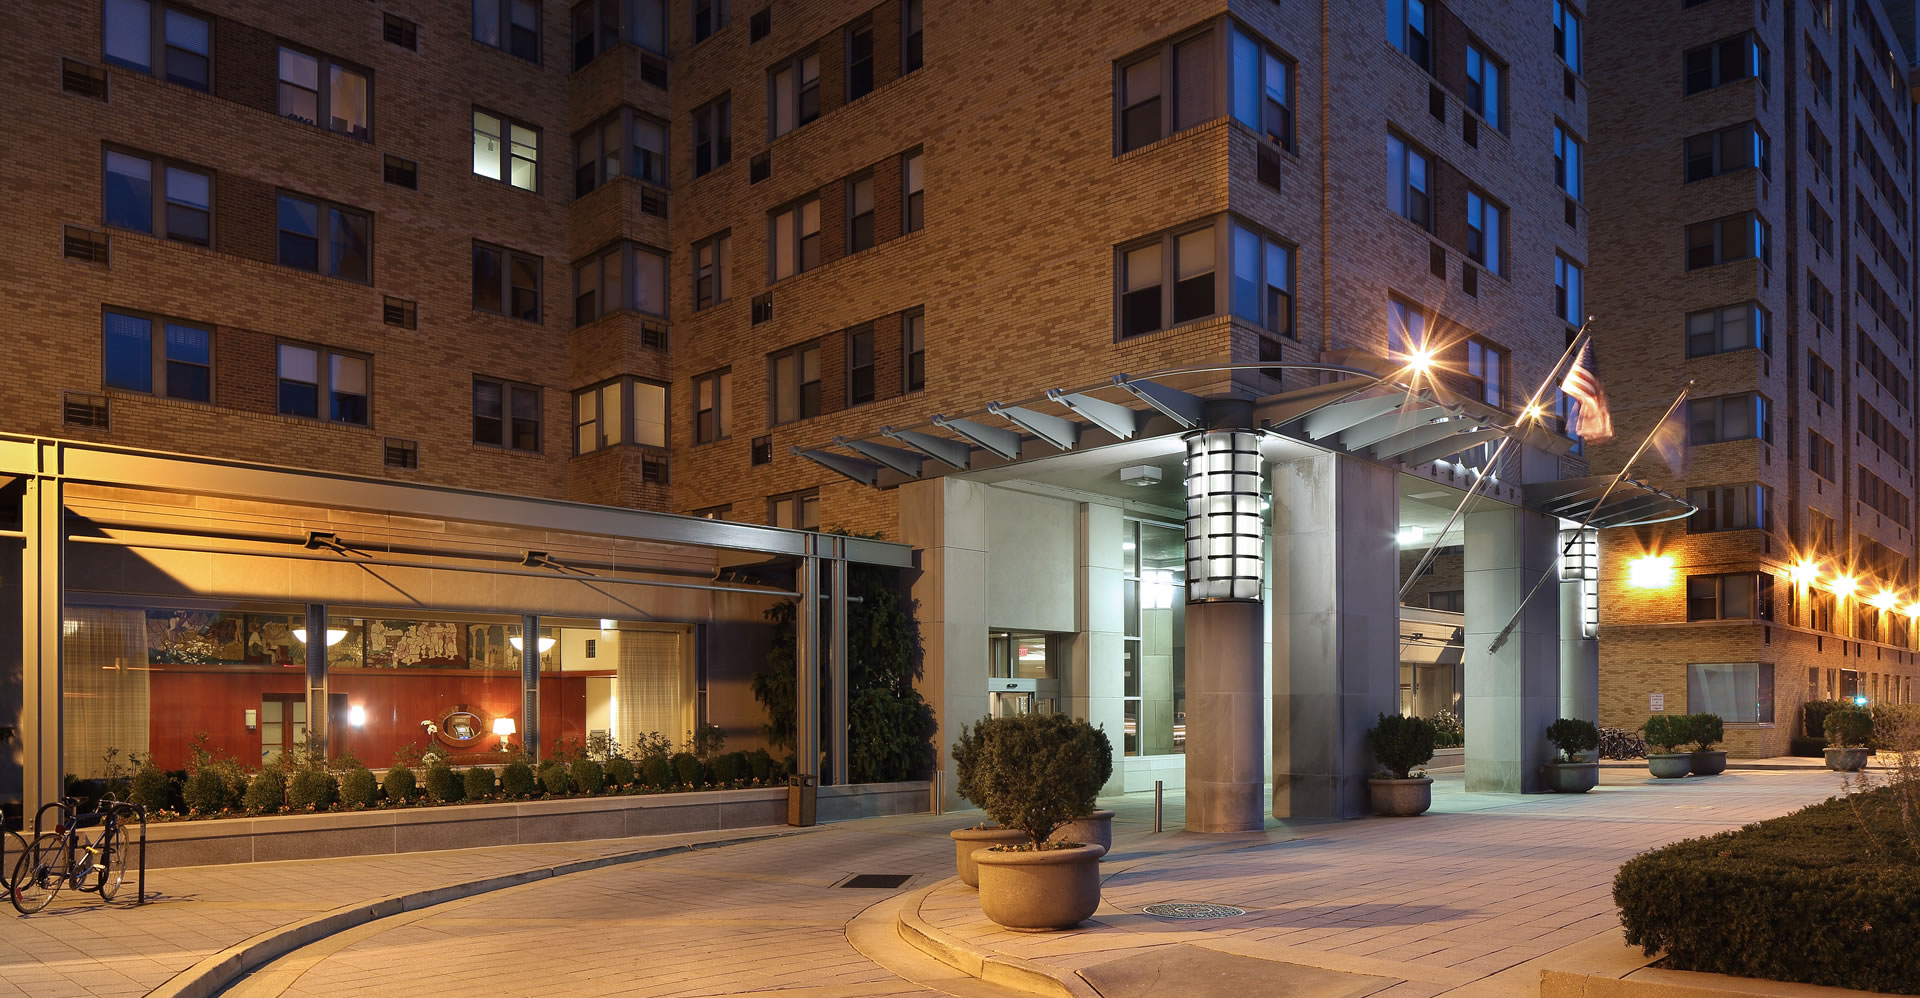 High-rise condos for sale near Benjamin Franklin Parkway